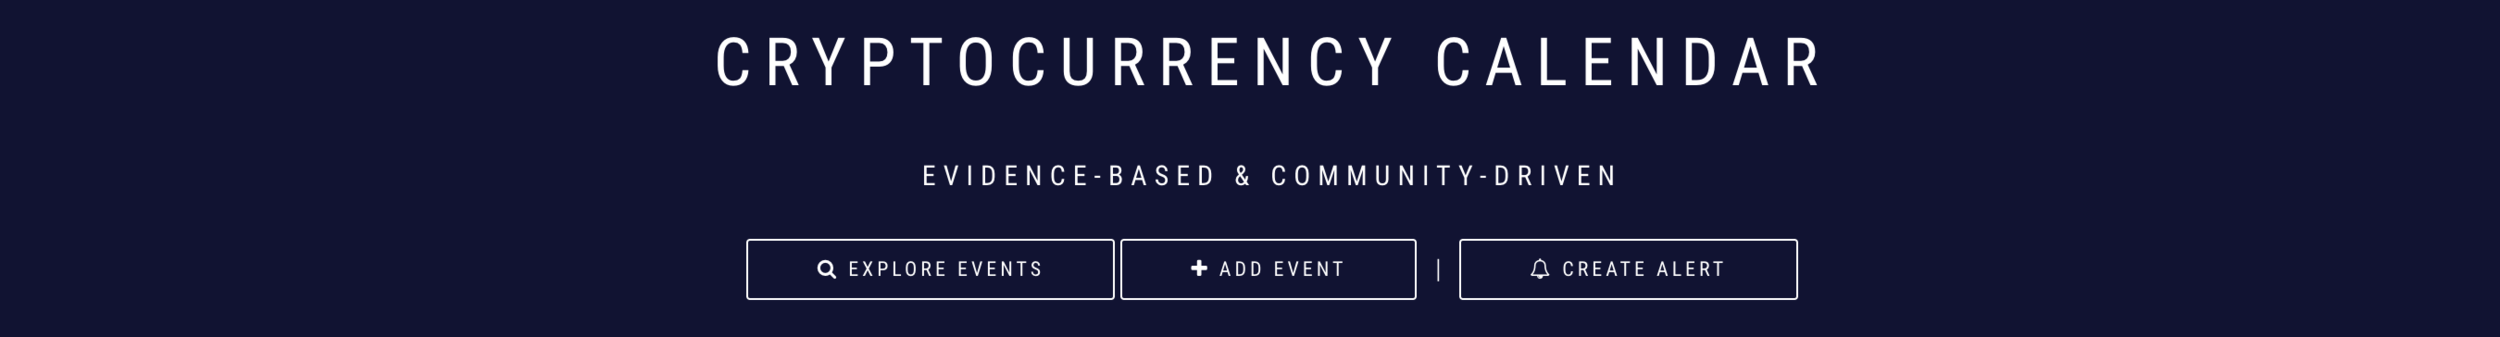 Keep up with the latest events, releases, and more across the cryptosphere.